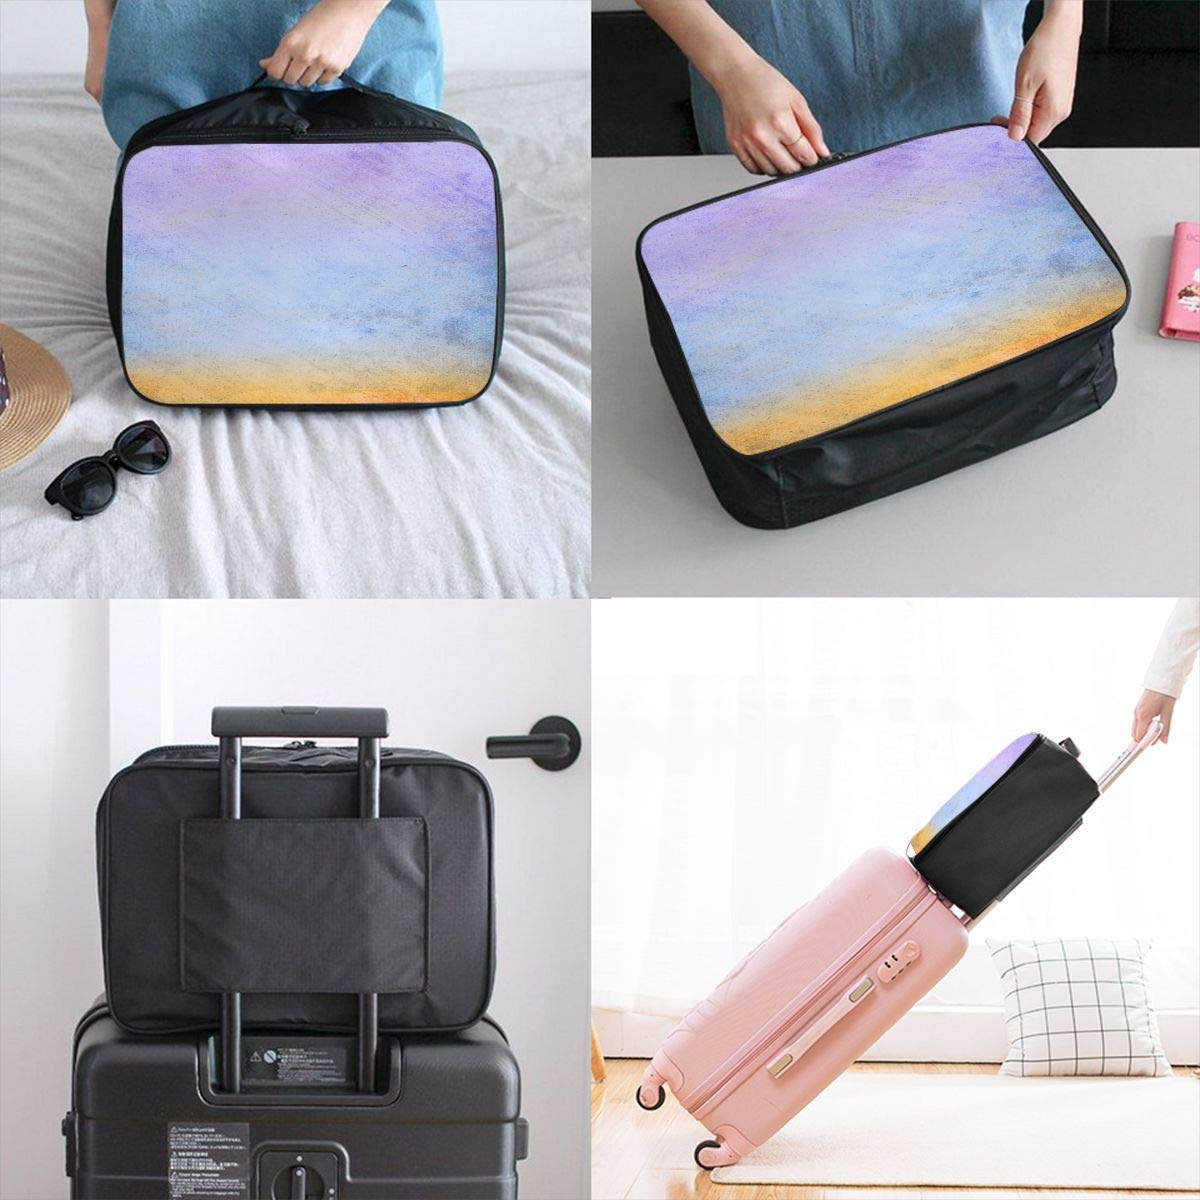 Art Abstract Watercolor Color Travel Lightweight Waterproof Foldable Storage Carry Luggage Large Capacity Portable Luggage Bag Duffel Bag